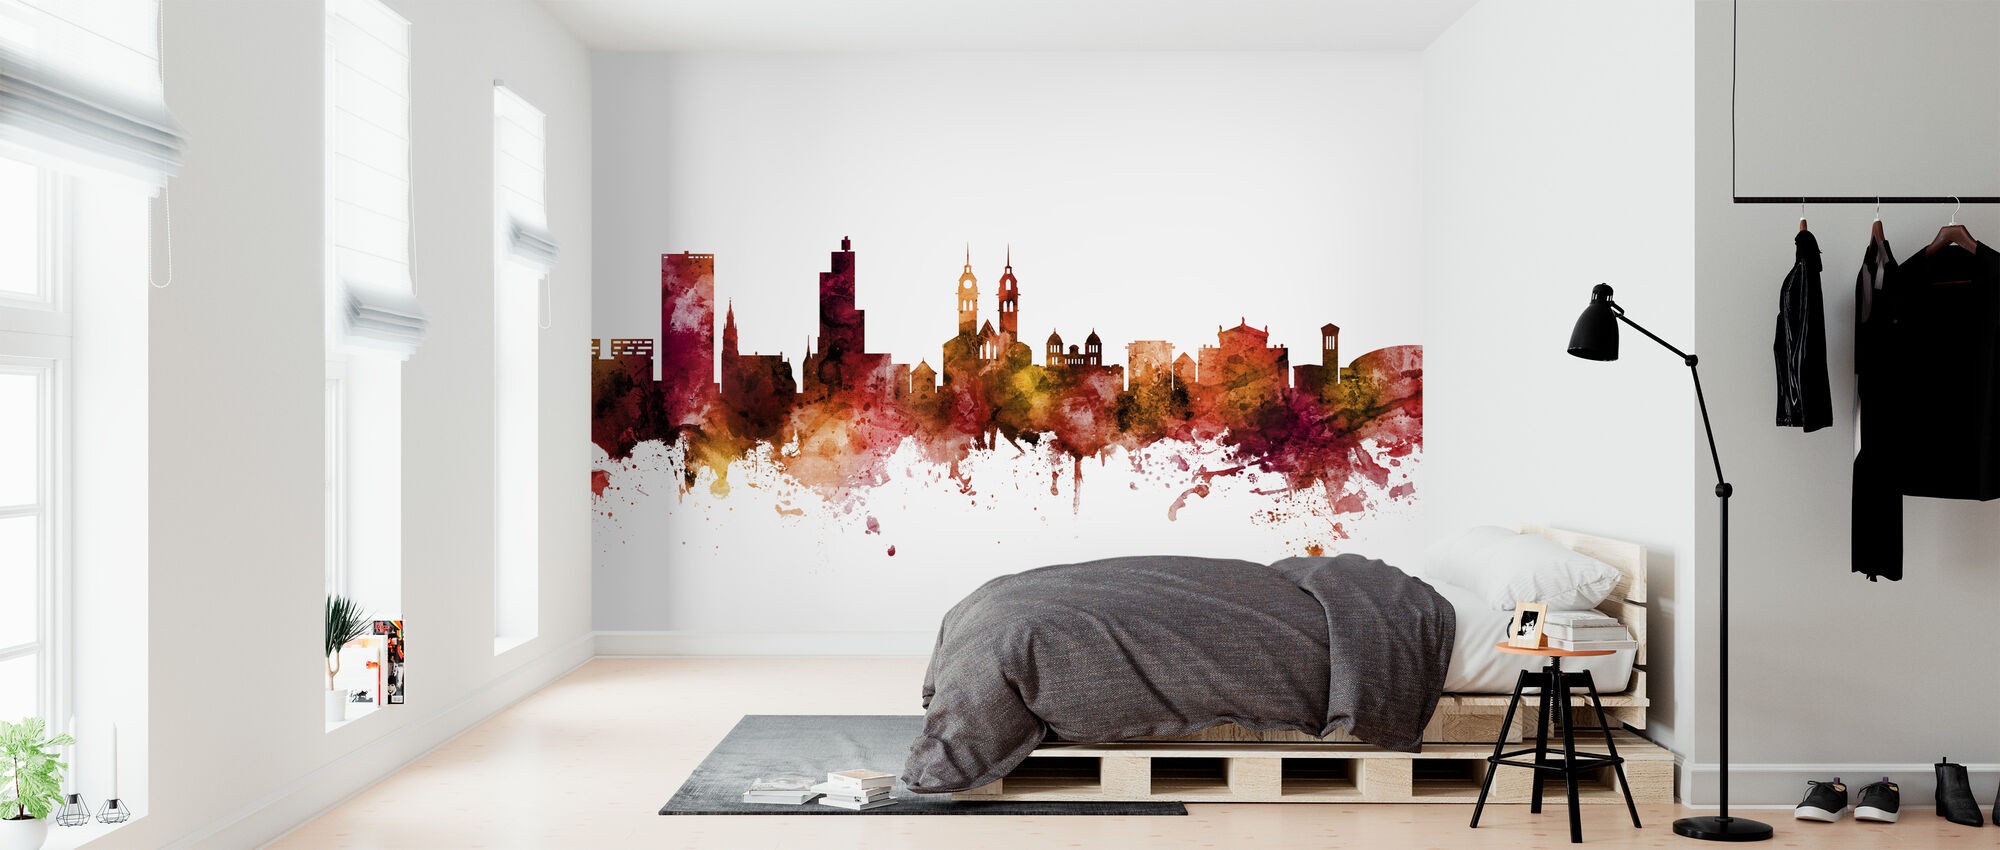 Winterthur Switzerland Skyline - Wallpaper - Bedroom